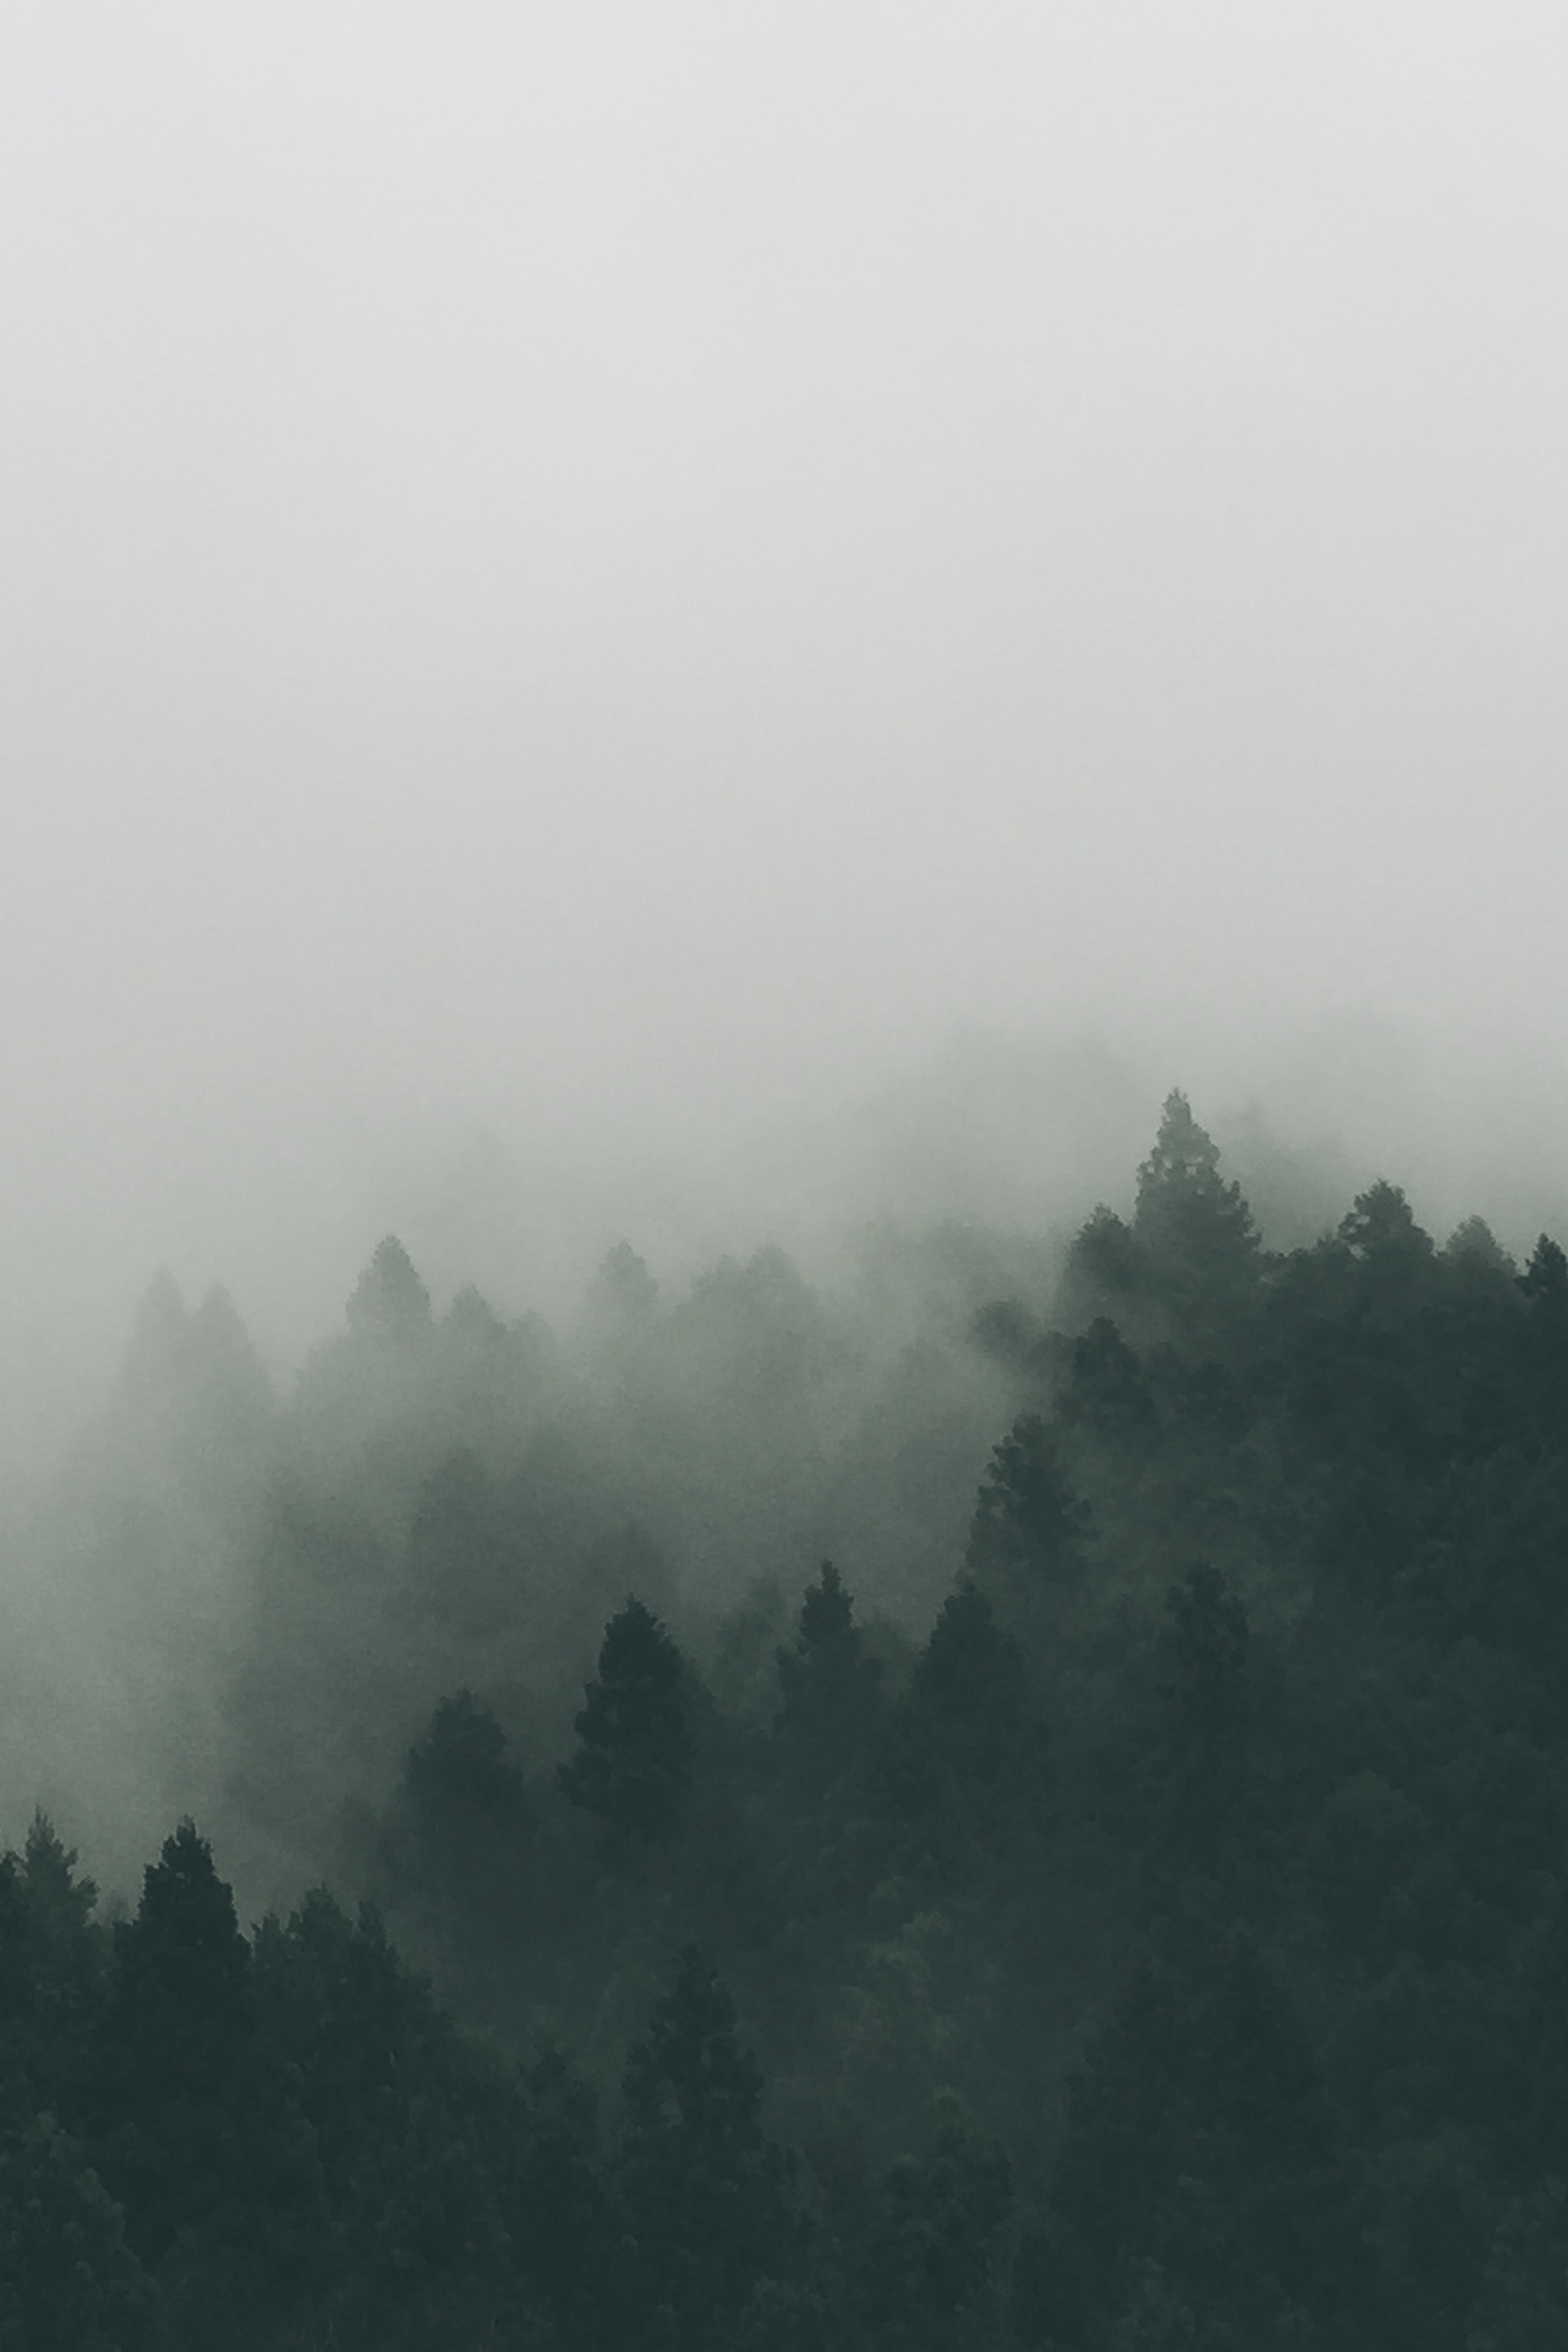 Dark silhouettes of evergreen trees under a heavy fog